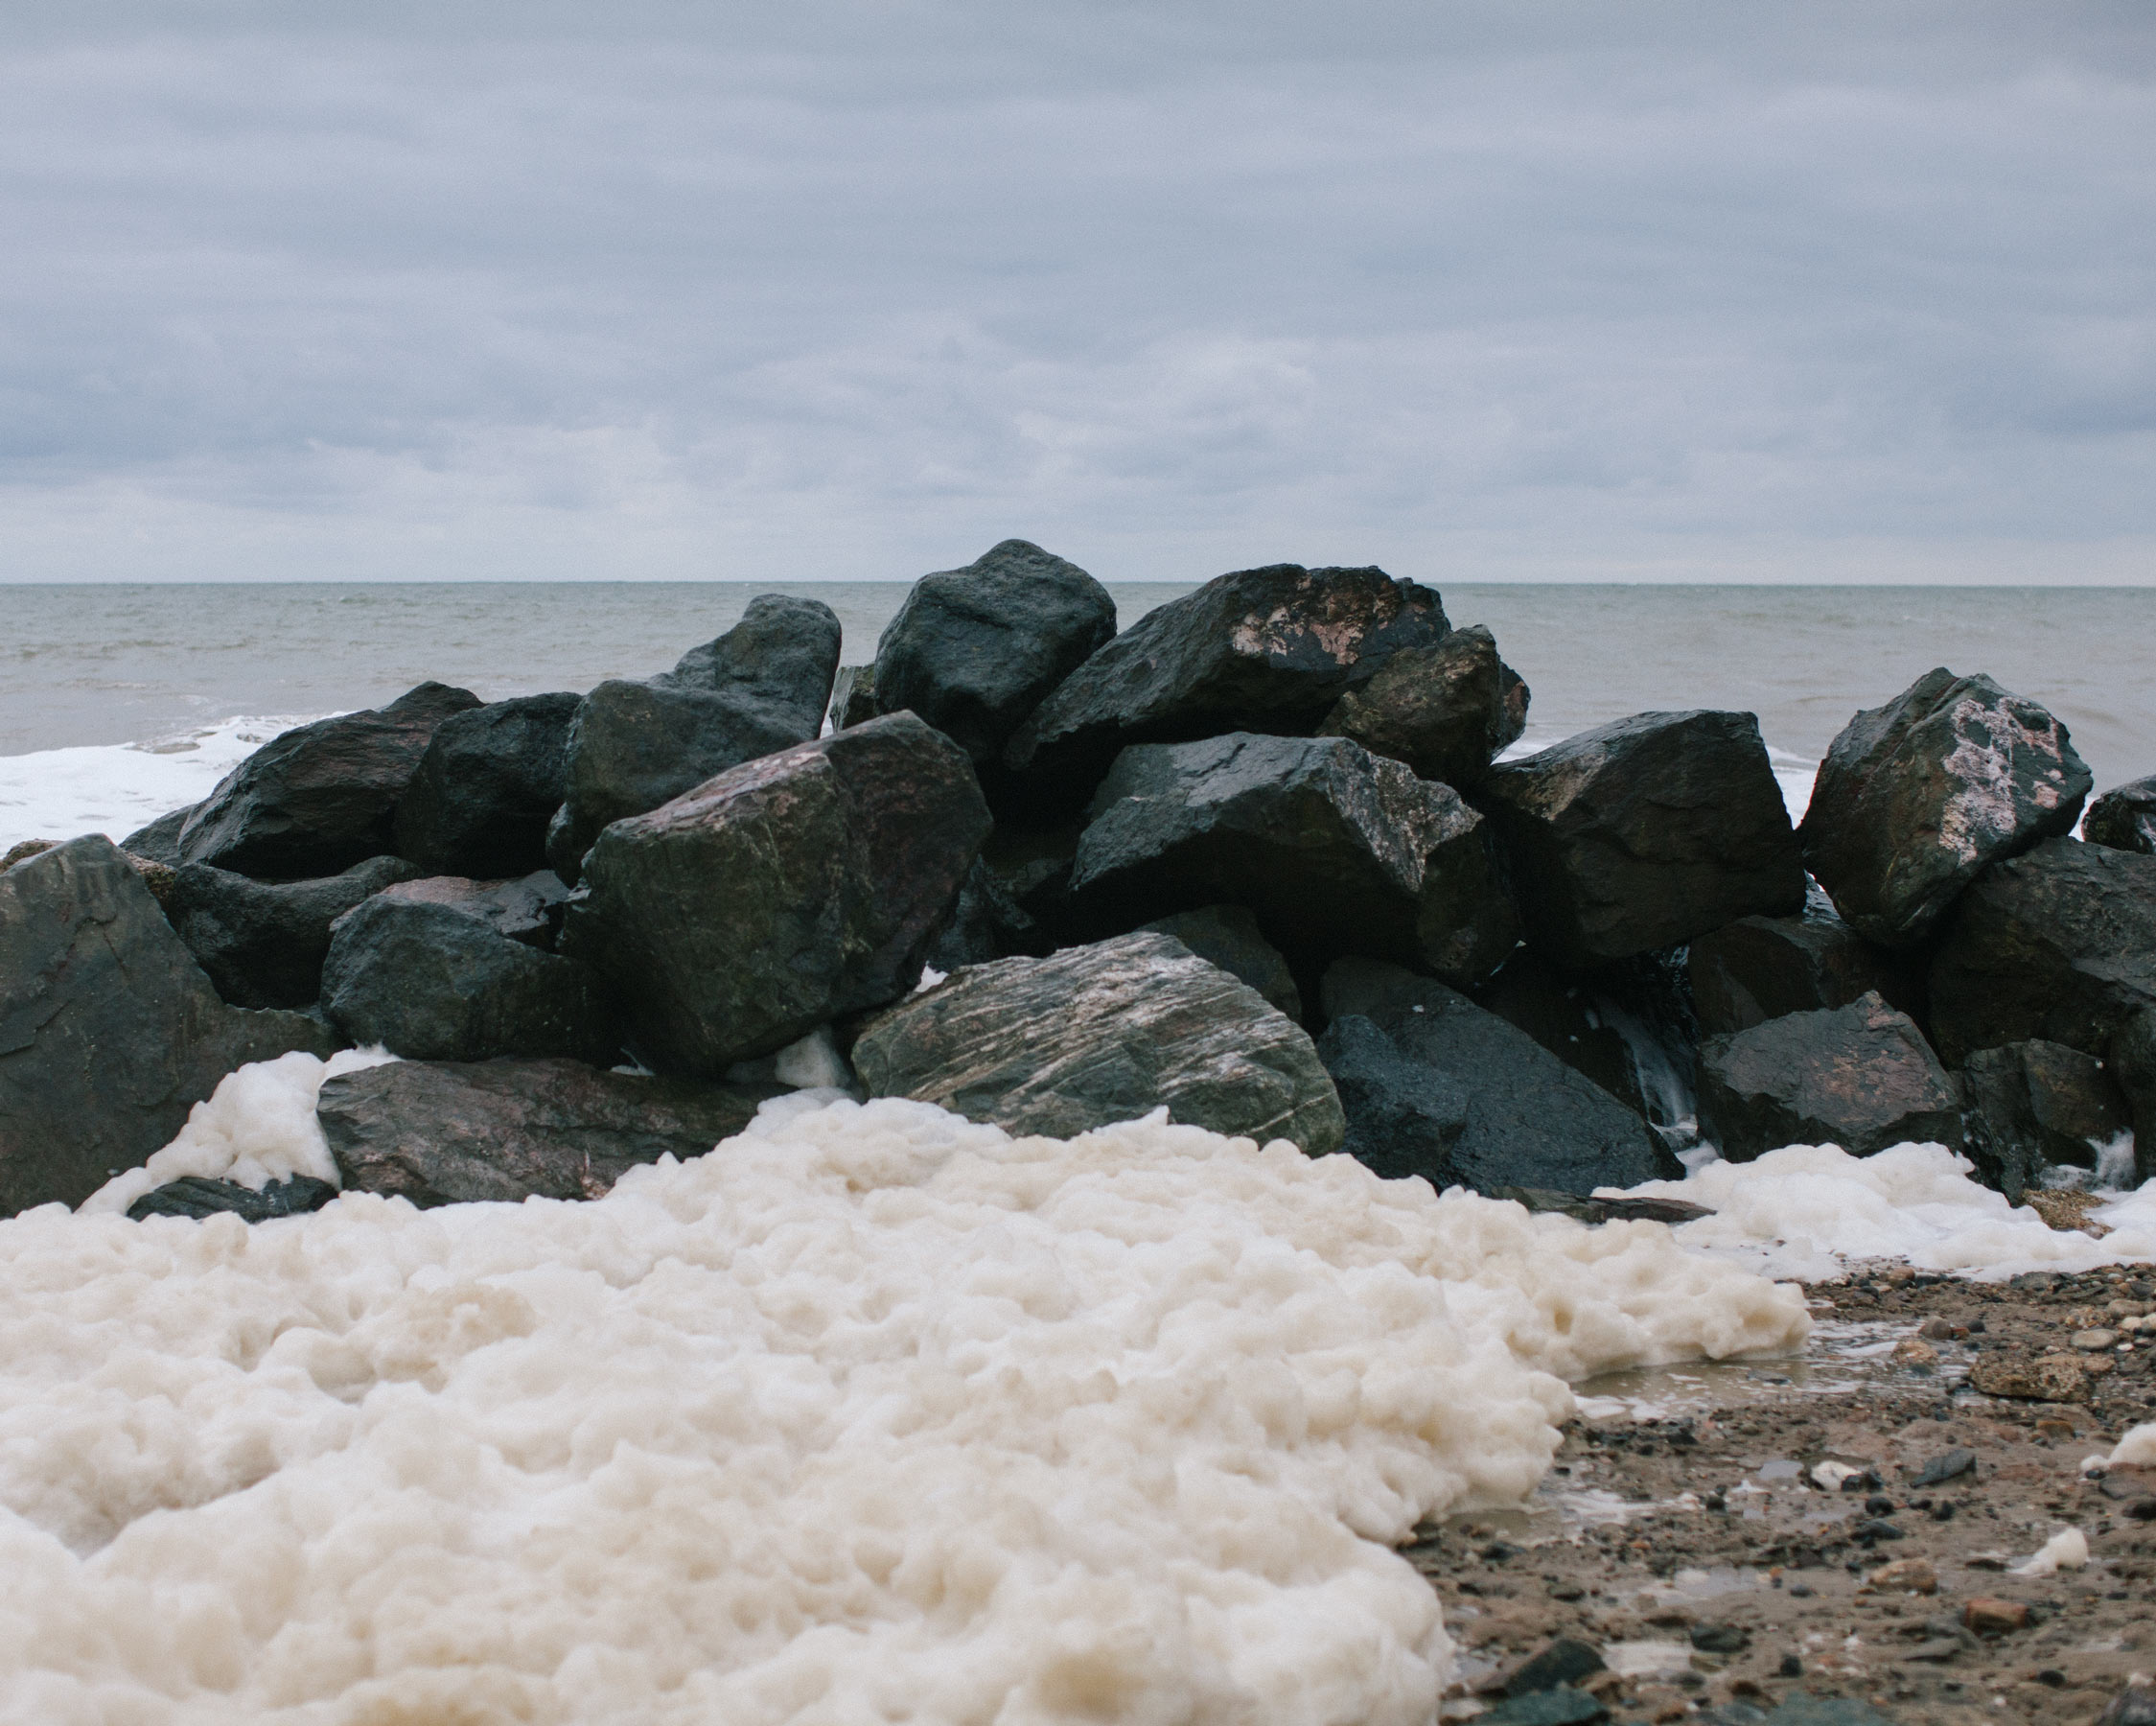 The old sea defences are no match for the tidal surges experienced in this part of the UK.